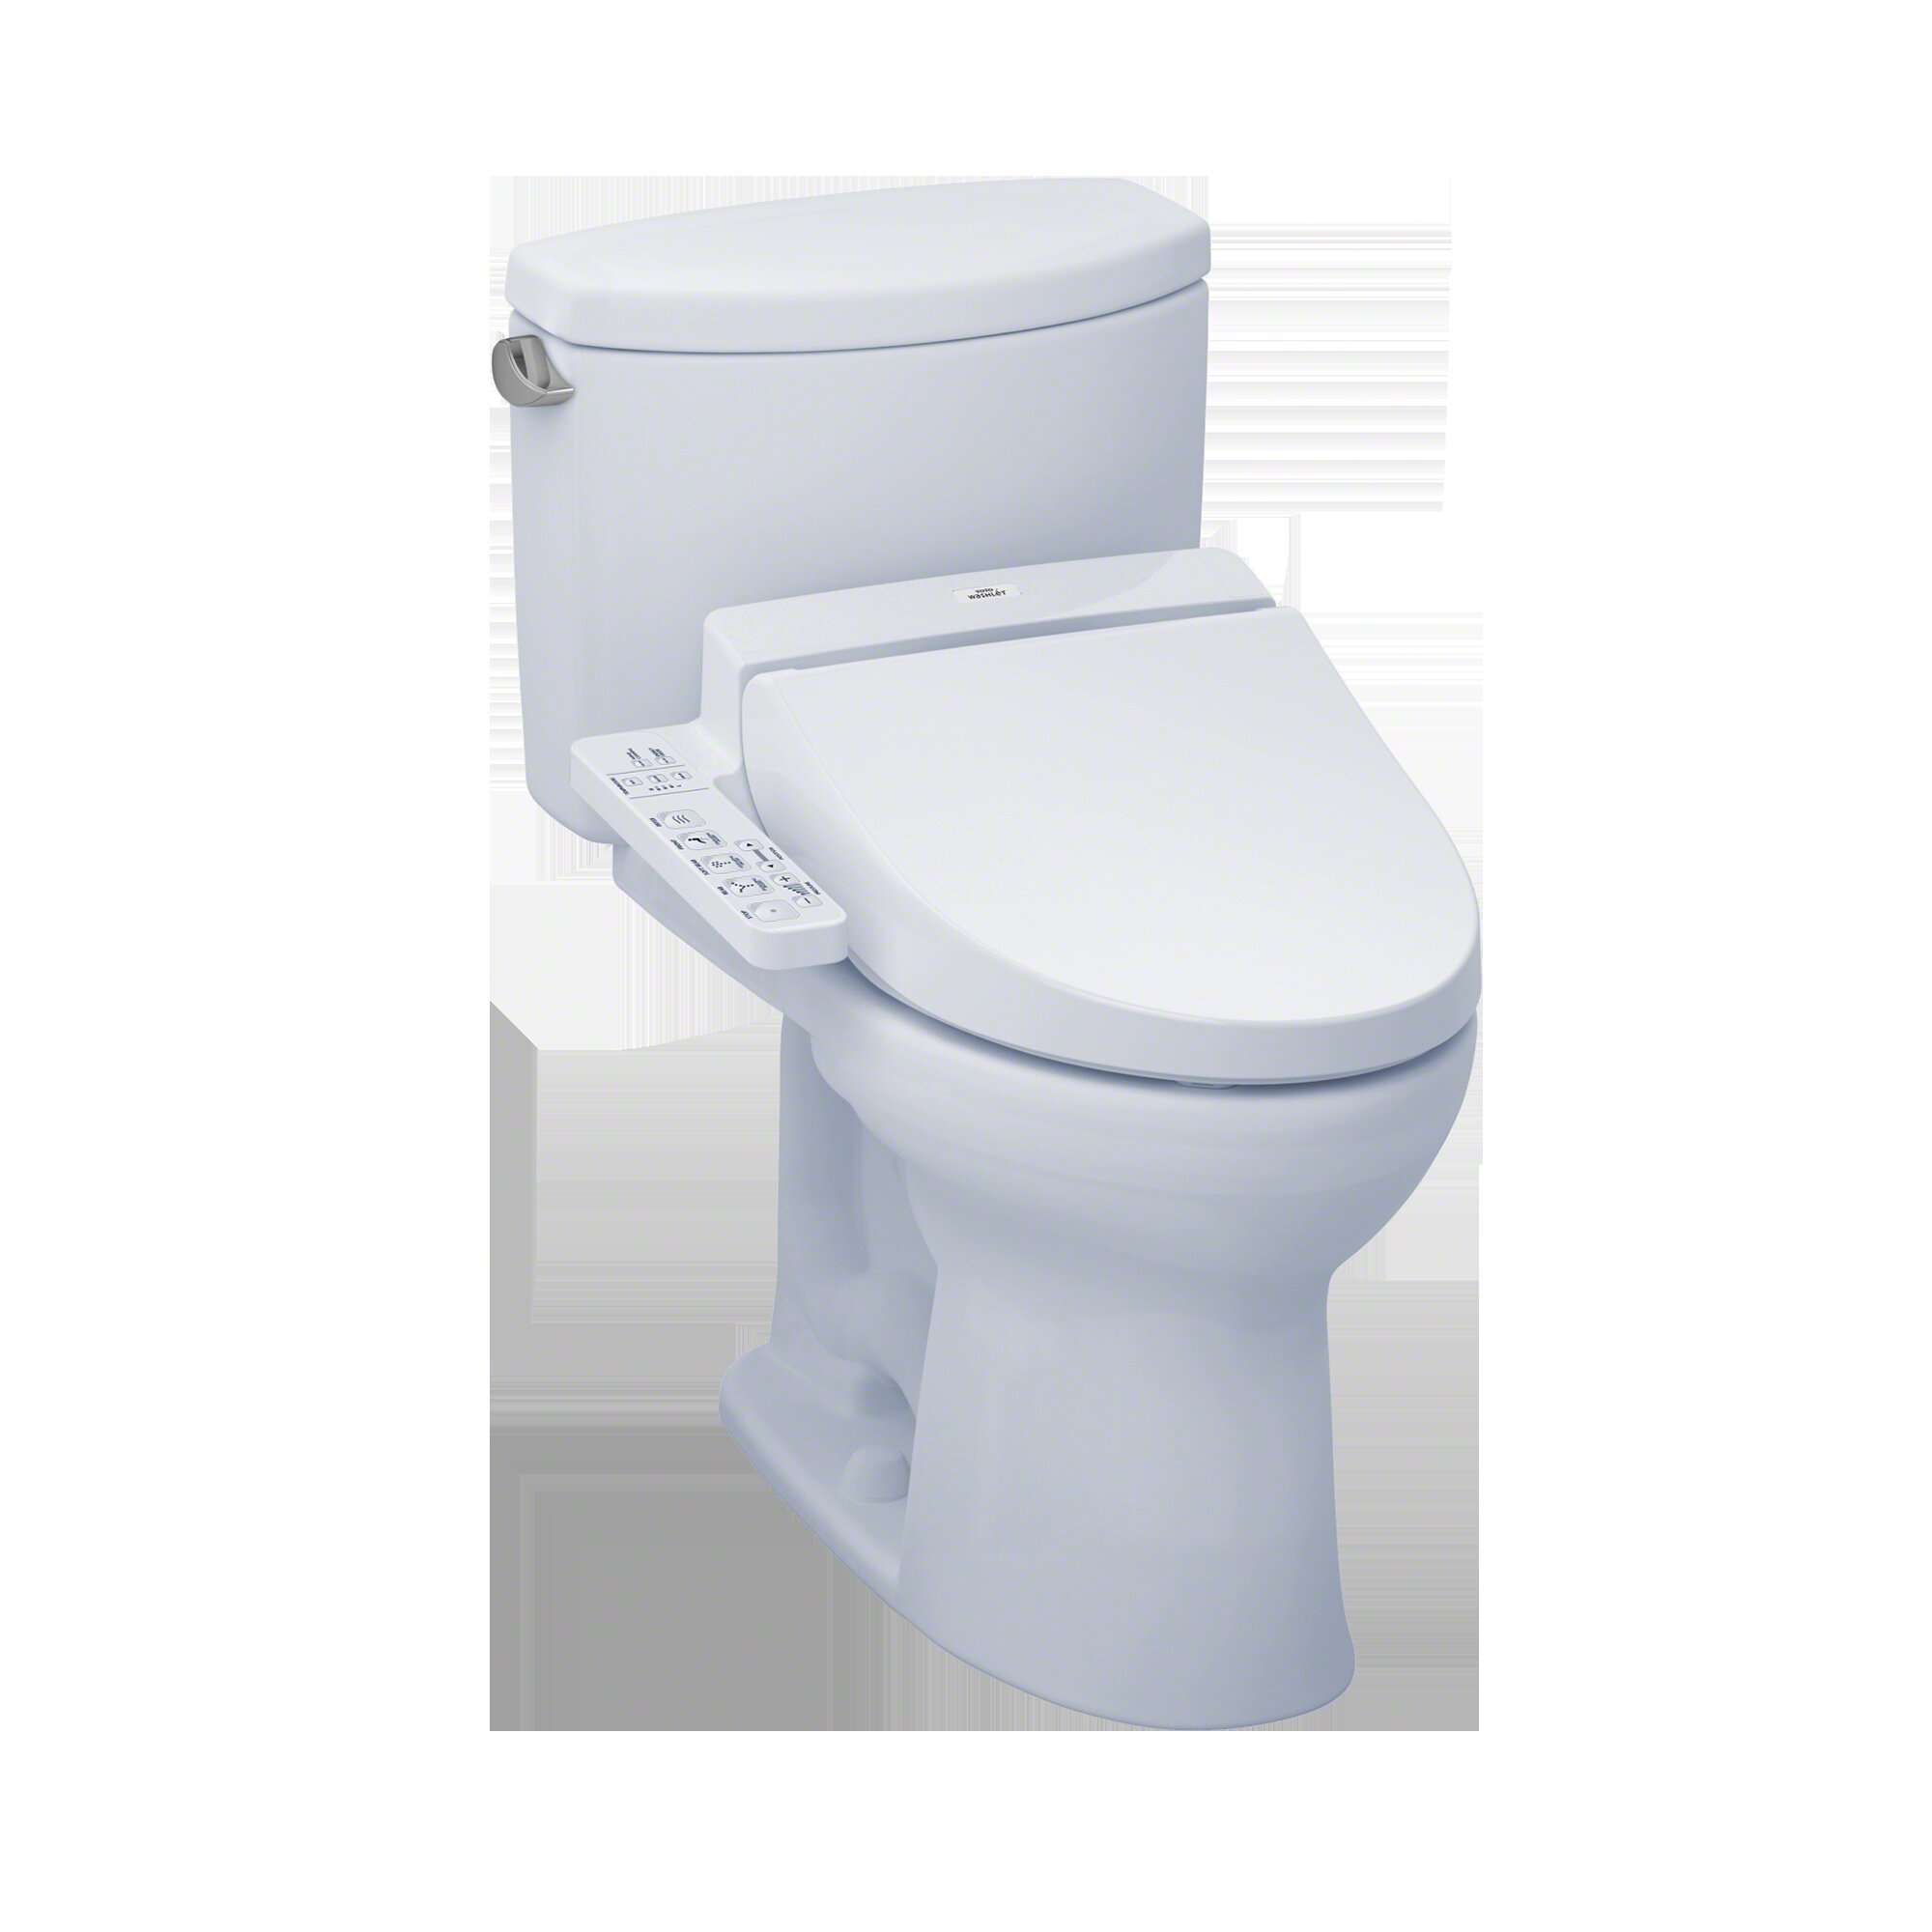 Phenomenal Drake 1 28 Gpf Water Efficient Elongated Bidet Toilet With High Efficiency Flush Seat Included Pdpeps Interior Chair Design Pdpepsorg